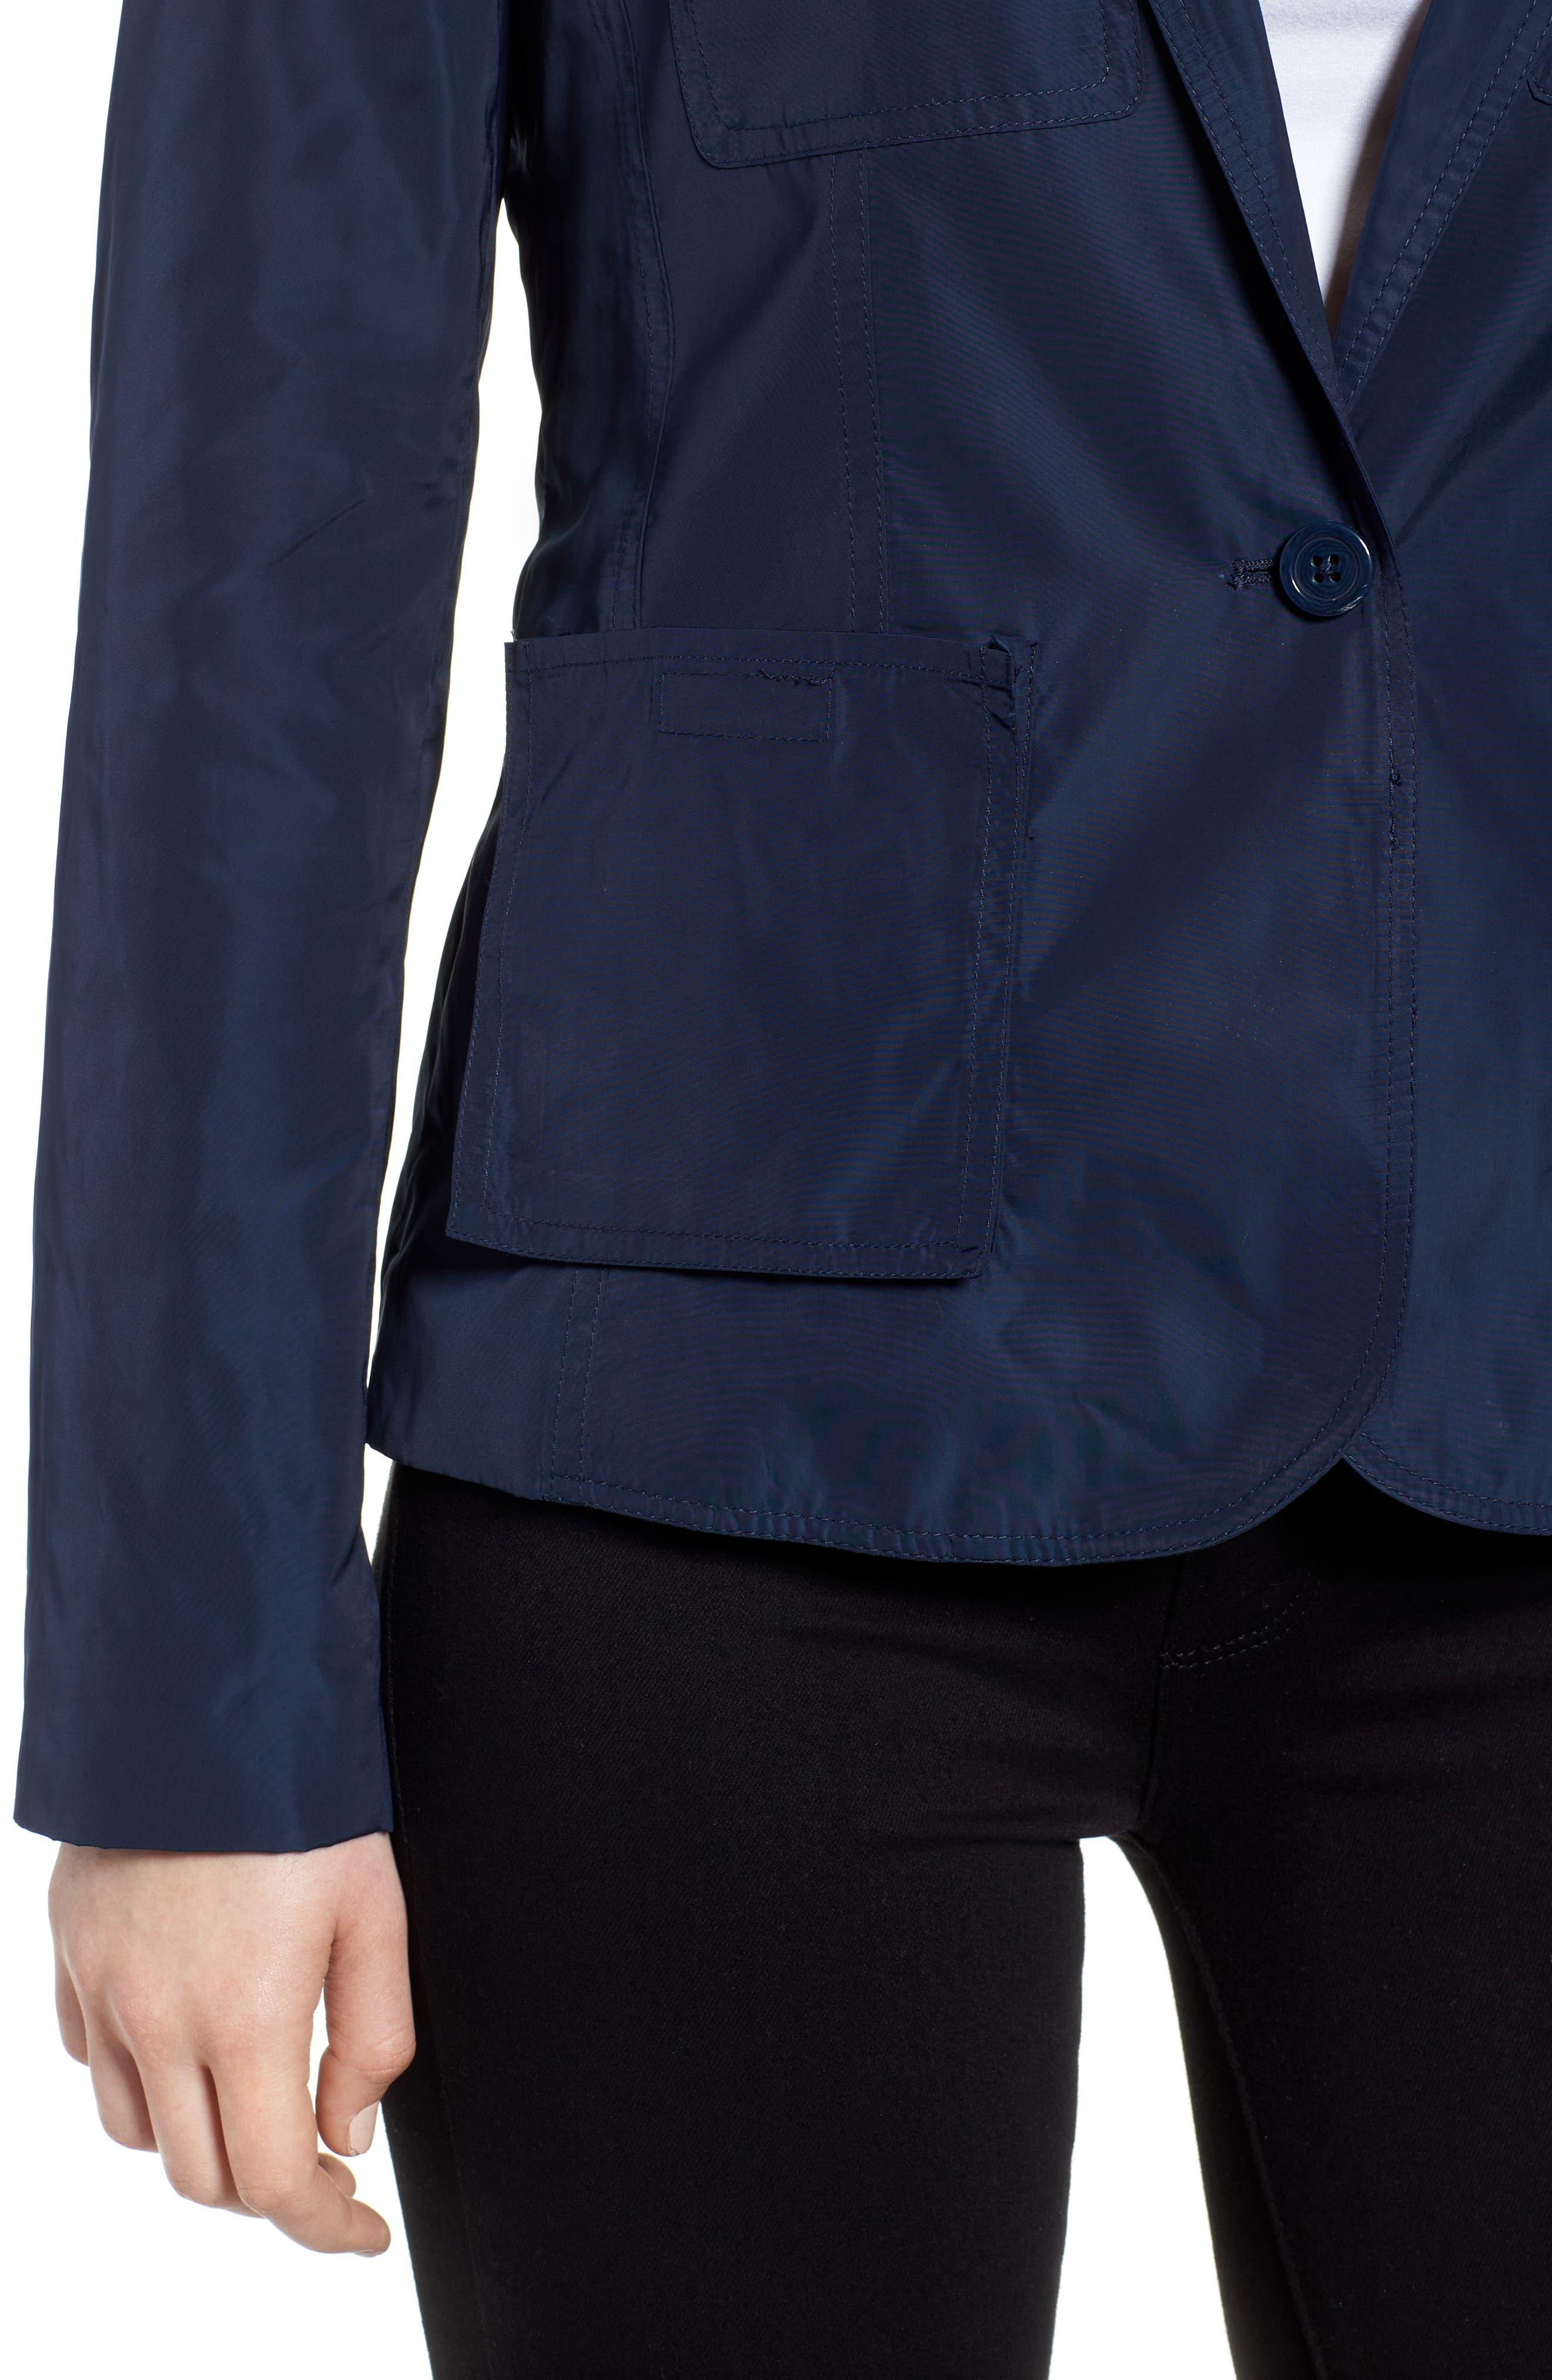 Two-Button Blazer,                             Alternate thumbnail 4, color,                             Indigo